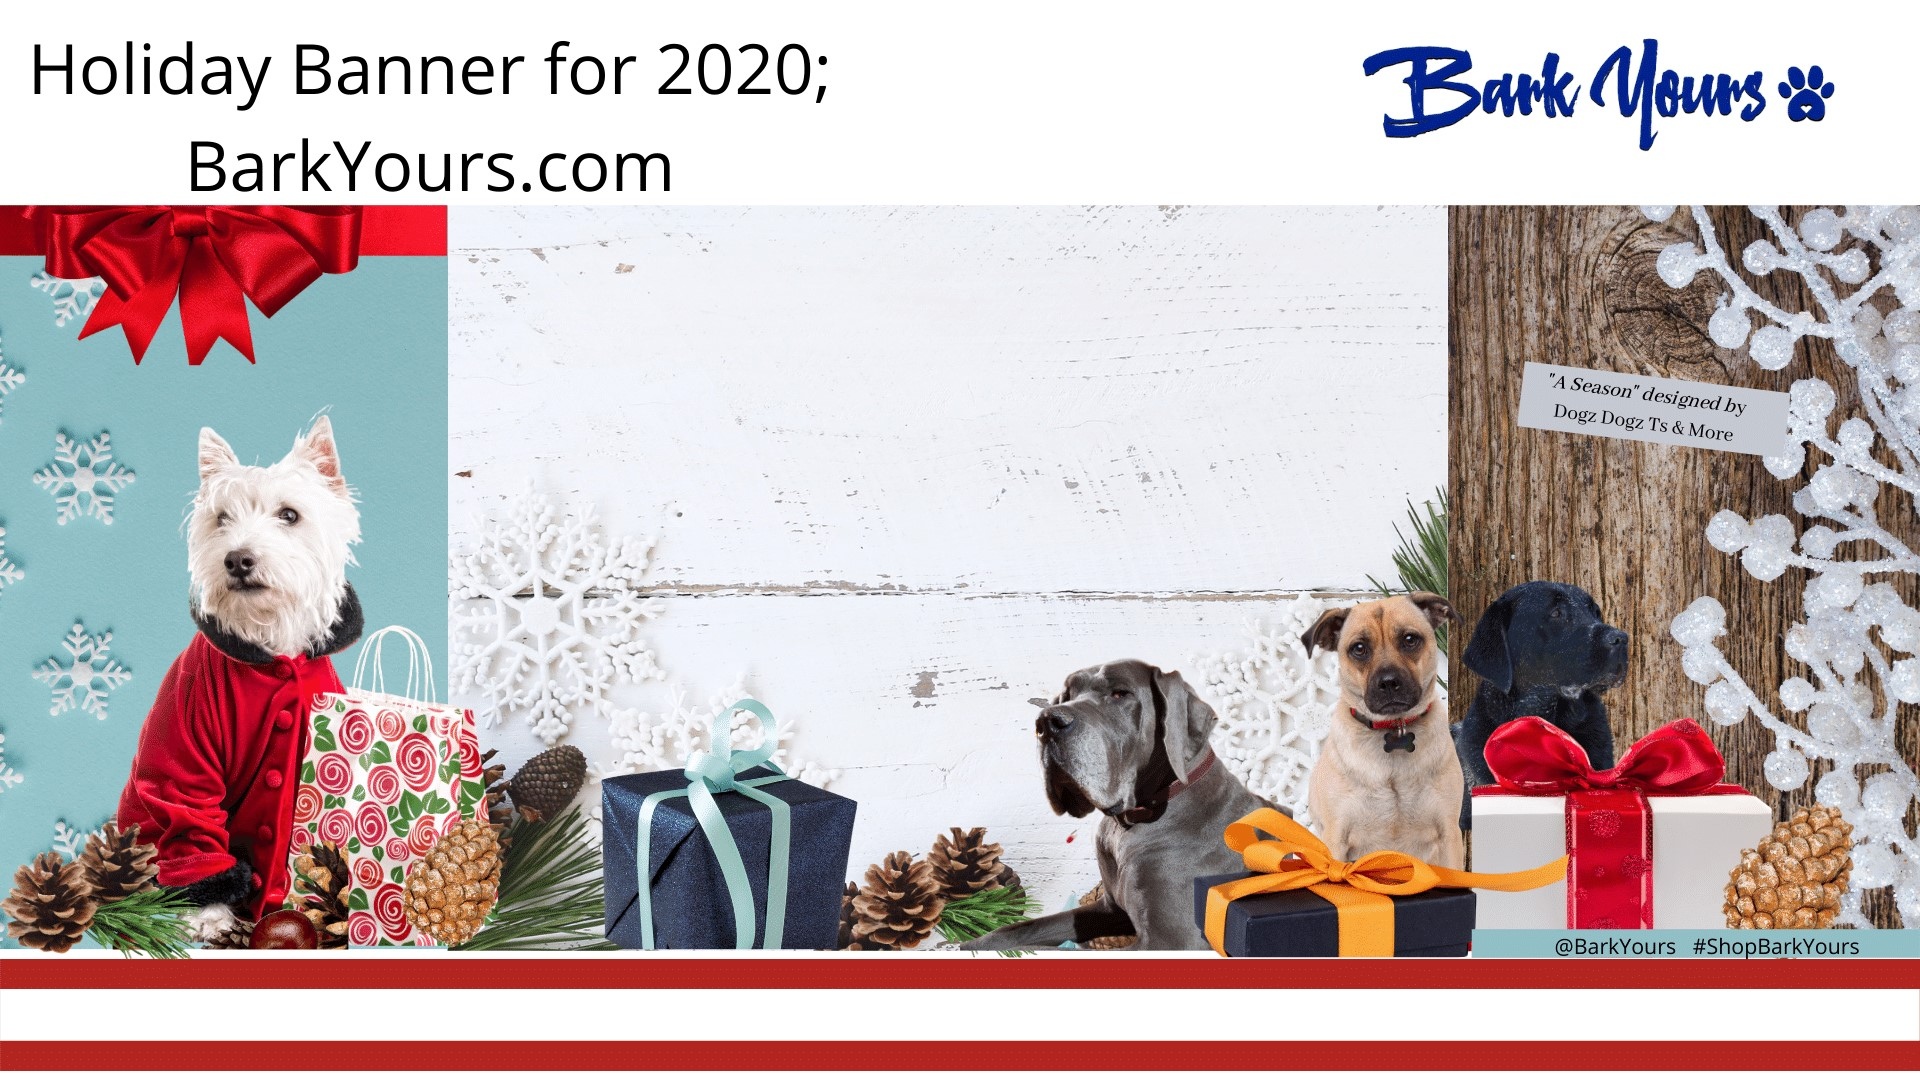 The Holiday Banner for BarkYours.com